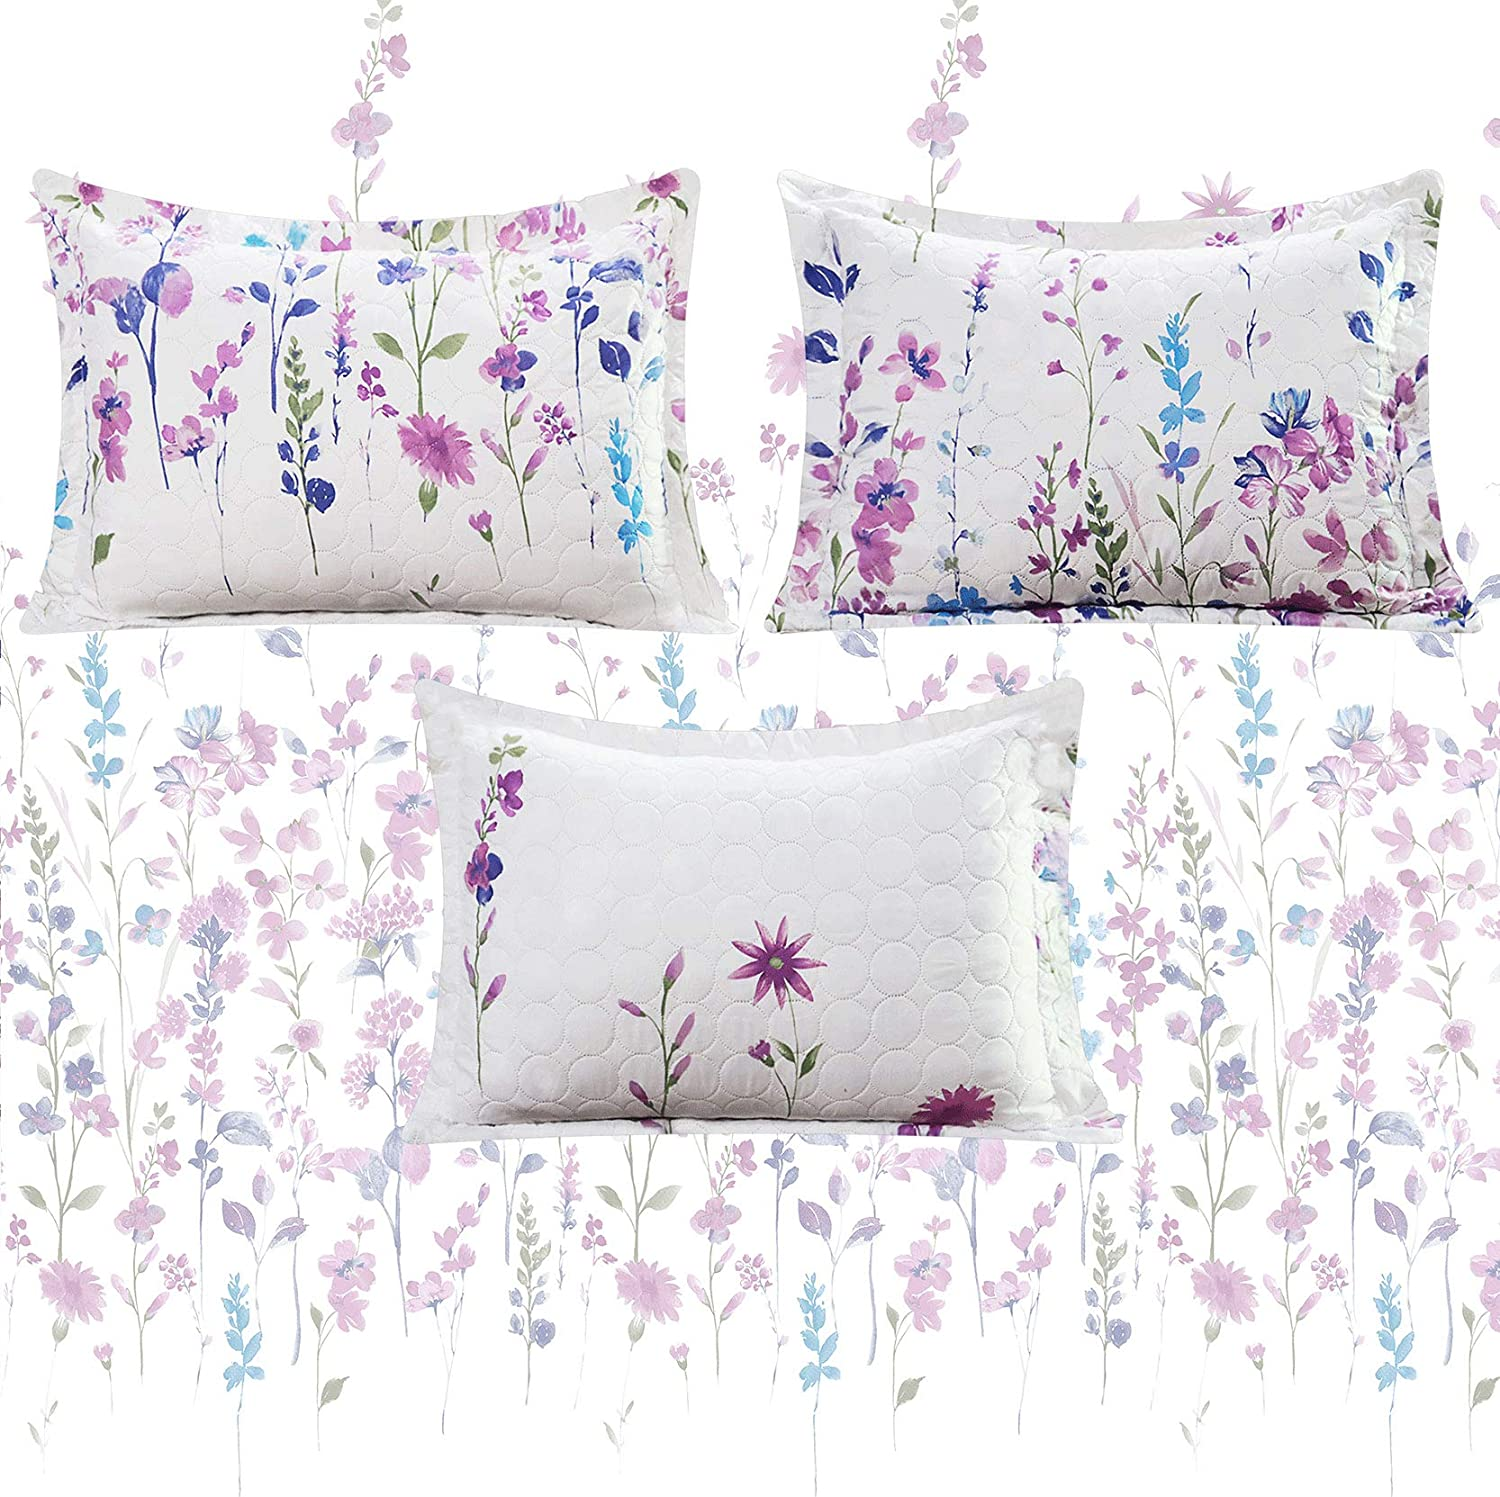 Lightweight Floral Bedding Butterfly Tulip Summer Floral Bedspread Full//Queen Size Gray Purple White Flower Quilts Soft Breathable Thin Coverlet Bedding Cover with Random Pillow Shams